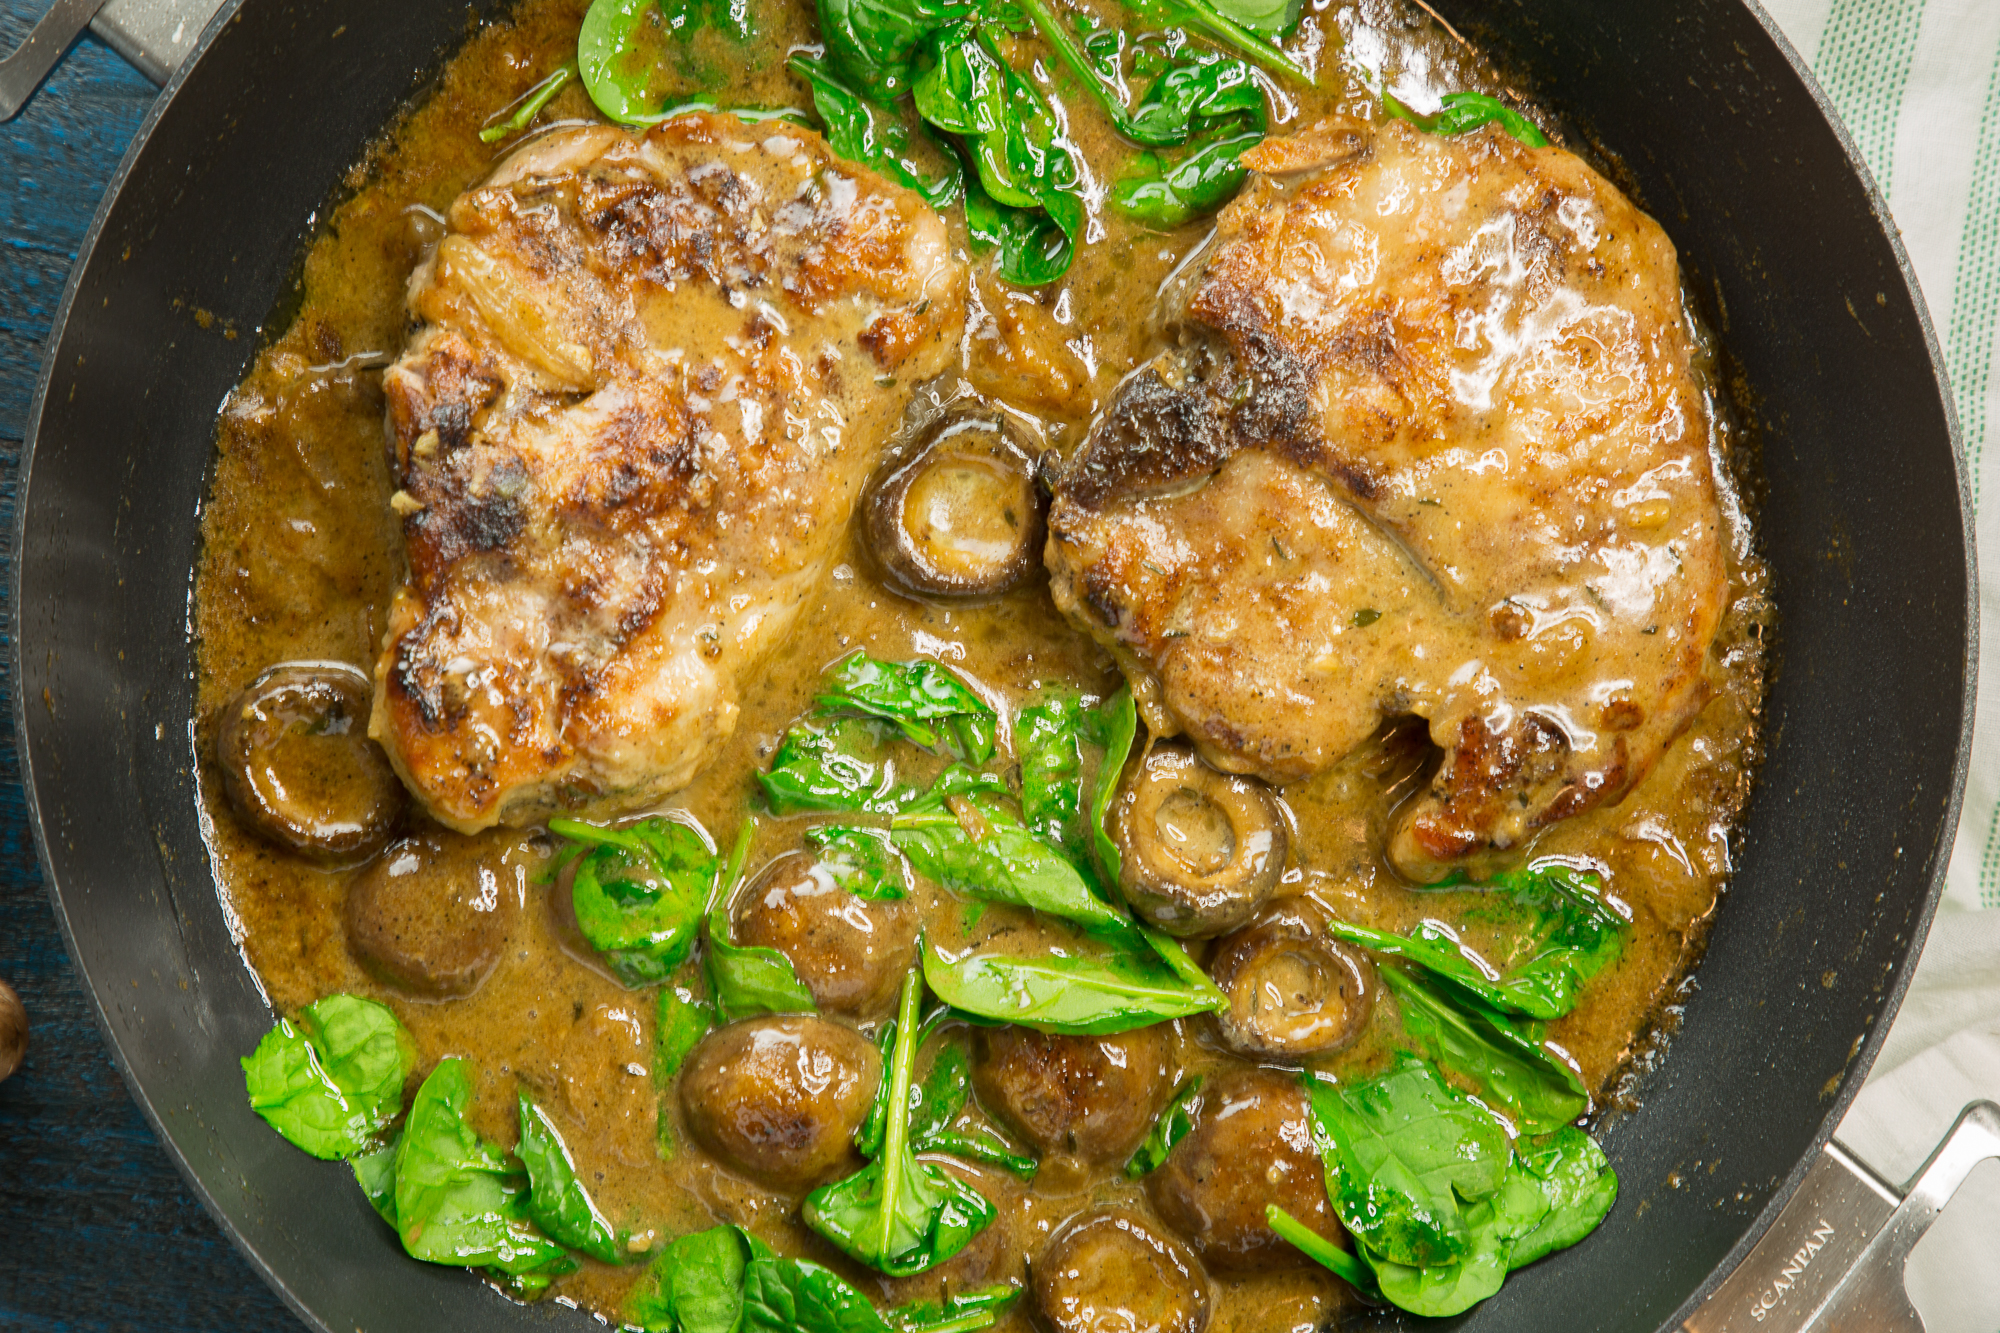 Best pork chops with mushroom gravy